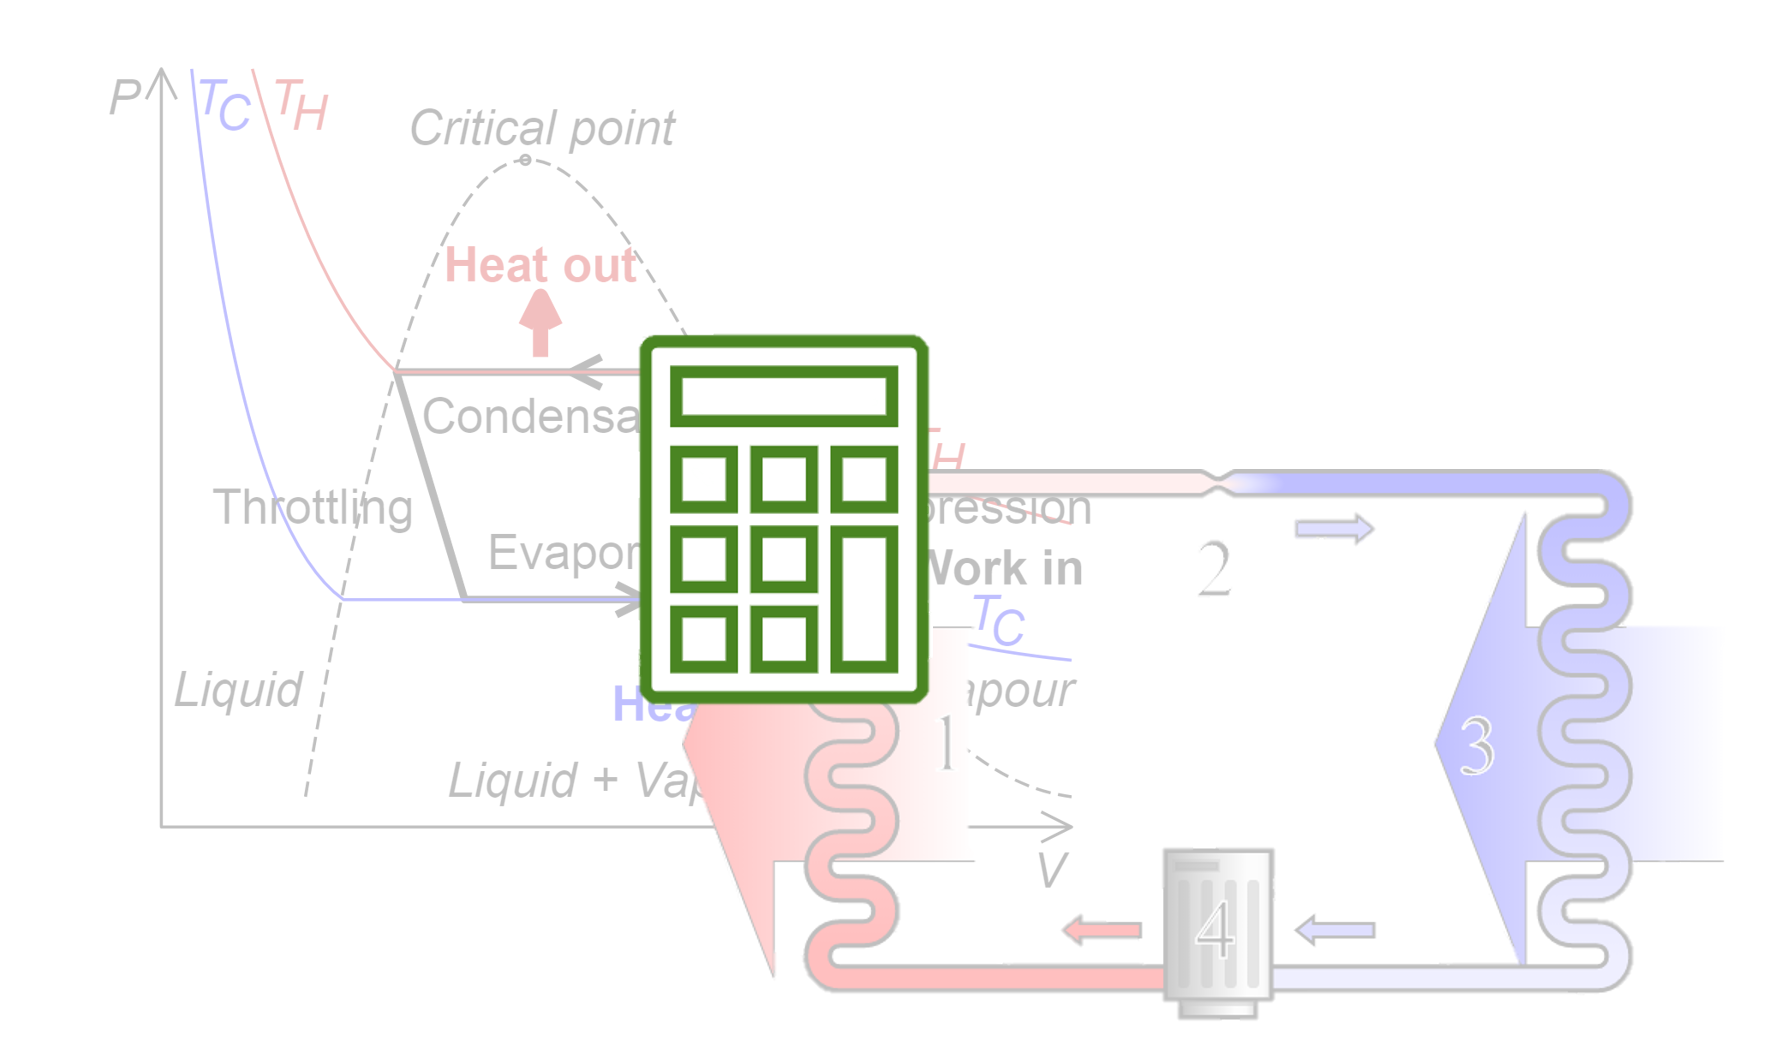 Copcalc Tangix Design Development Liquid Engine Diagram Is A Cloudbased Scalable Calculation Used For Sizing And Facilitating Selecting Correct Heat Pumps Every Project